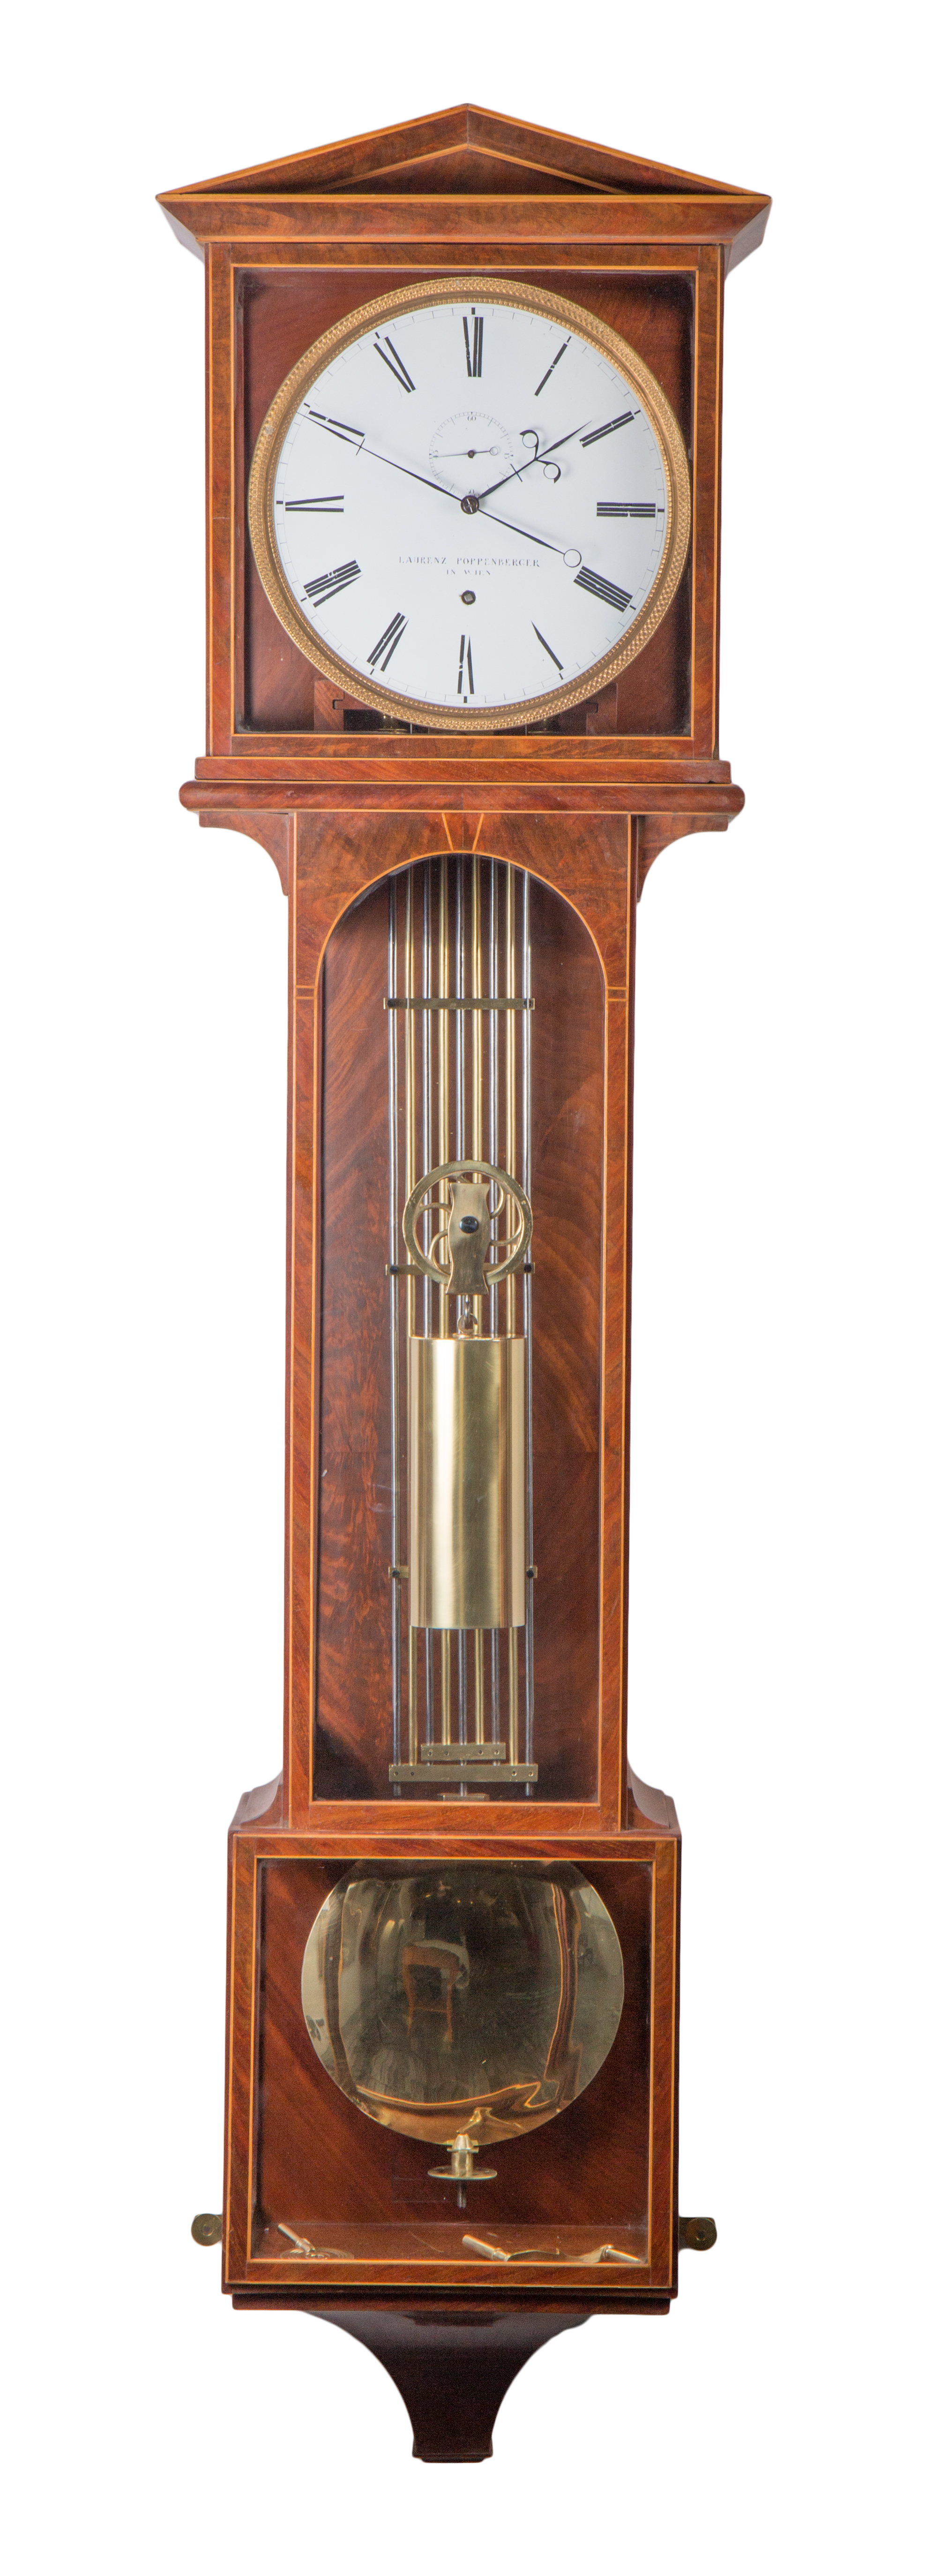 Laterndl clock by Laruenz Poppenberger with 6 months duration, c. 1835.